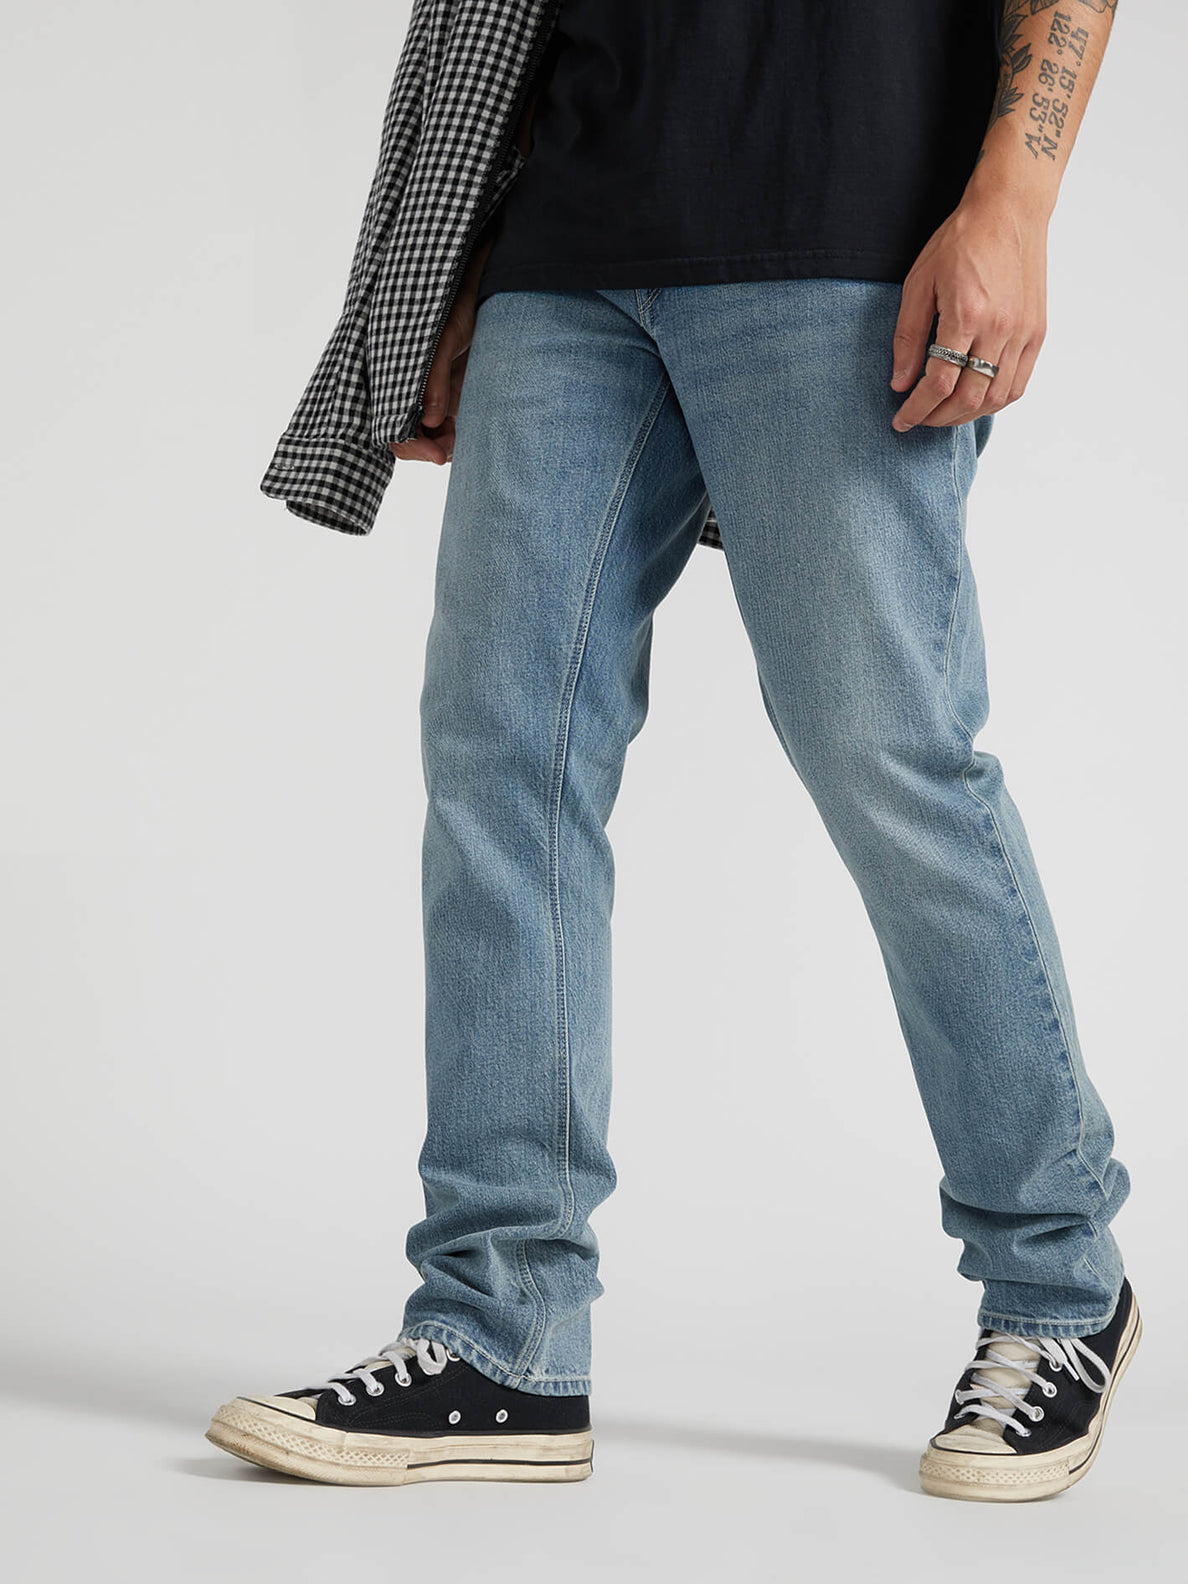 Vorta Slim Fit Jeans - Wide Goods Light (A1931501_WGL) [02]